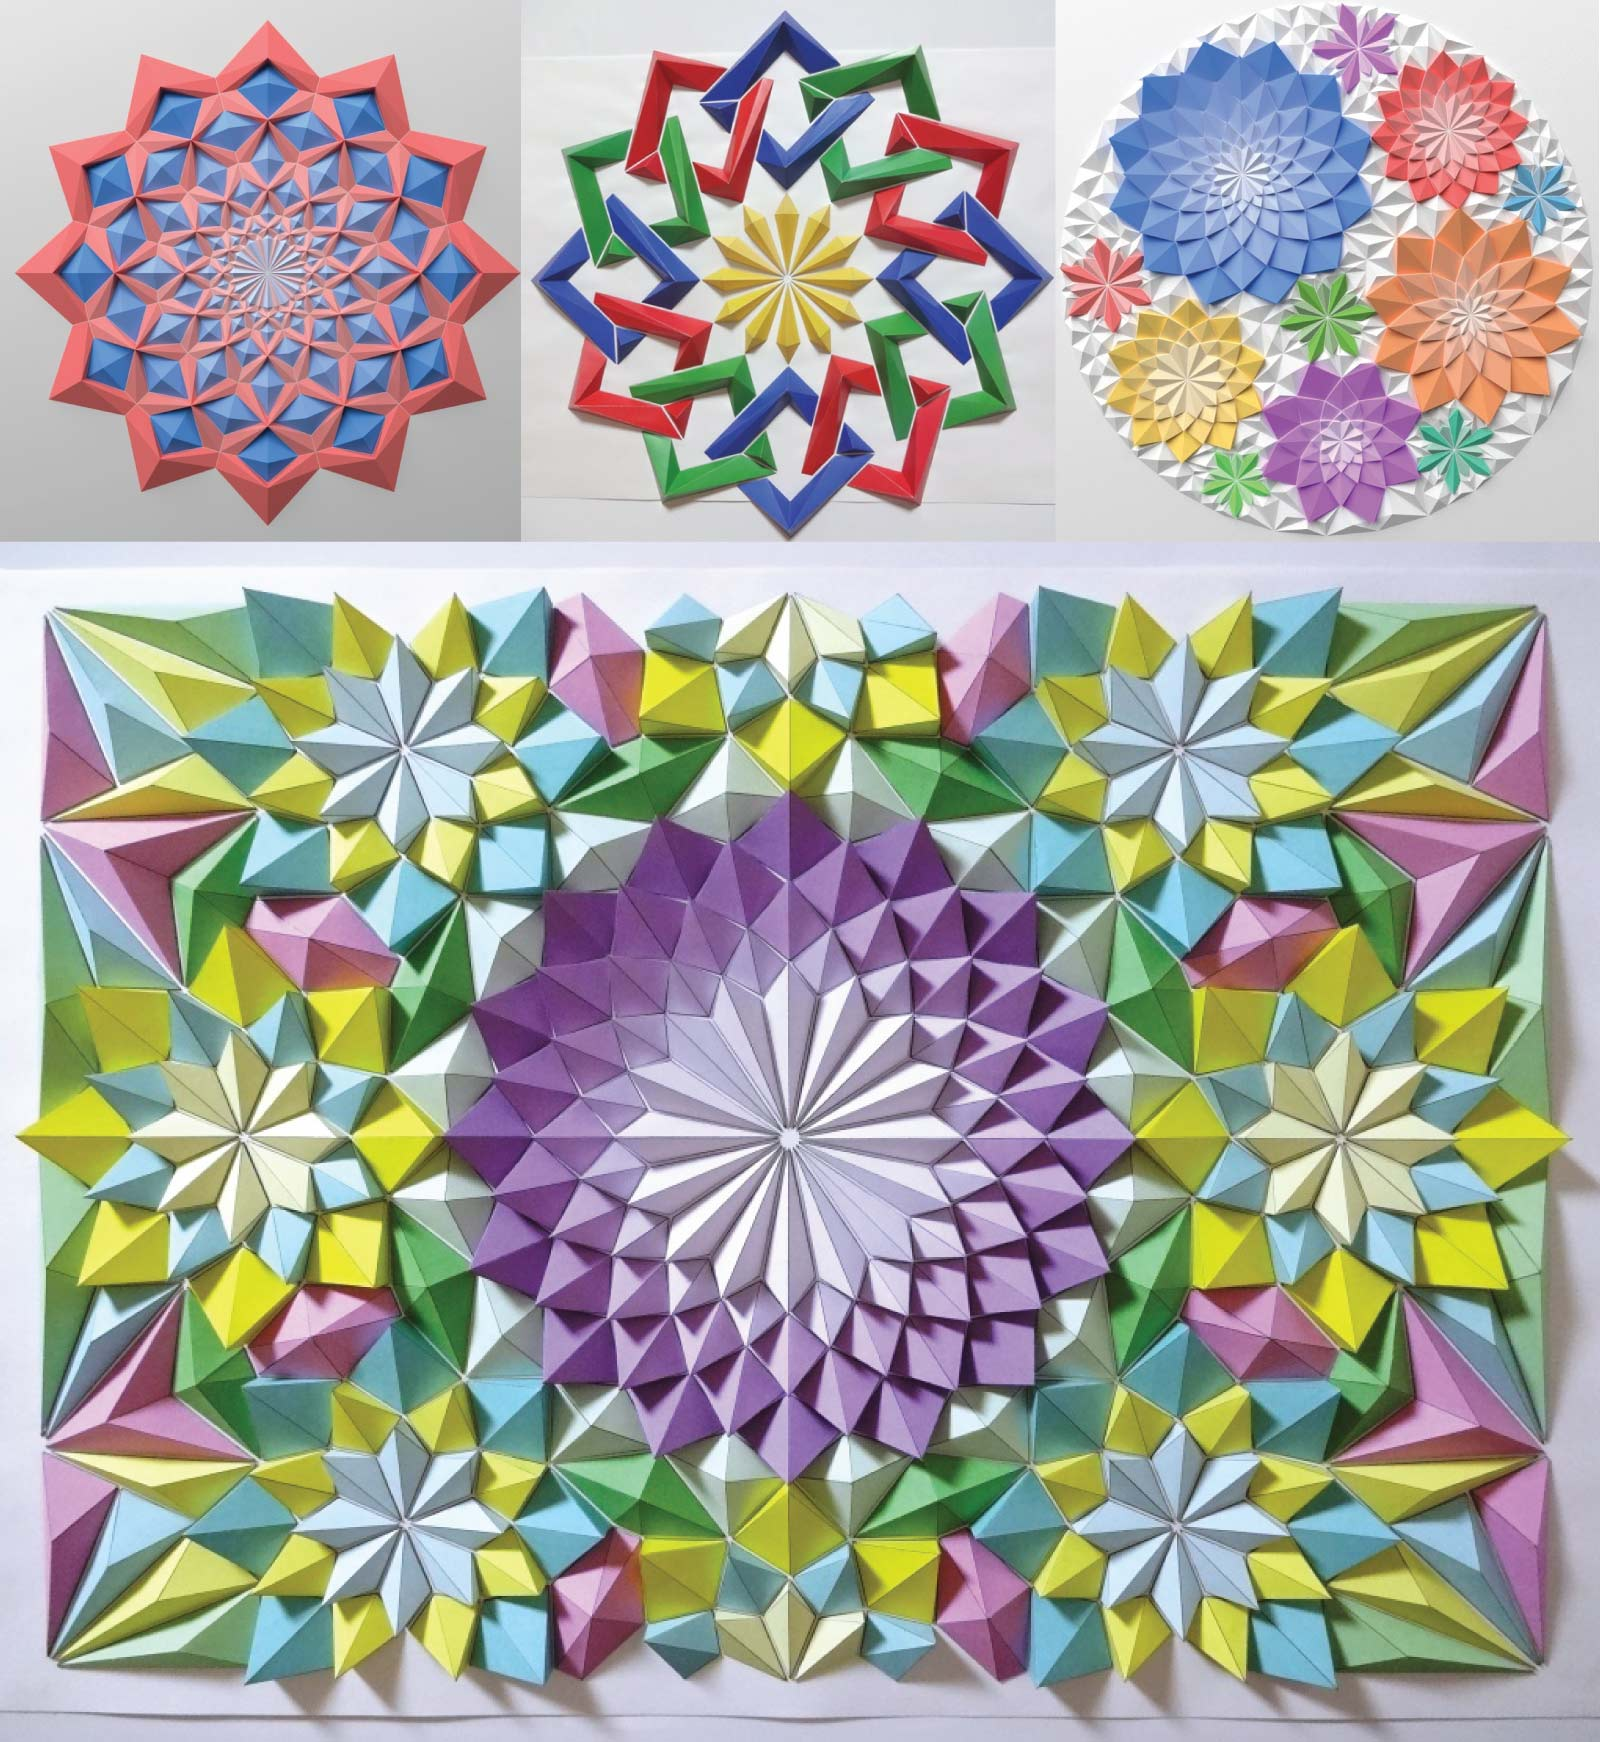 The Origami Mosaics of Kota Hiratsuka